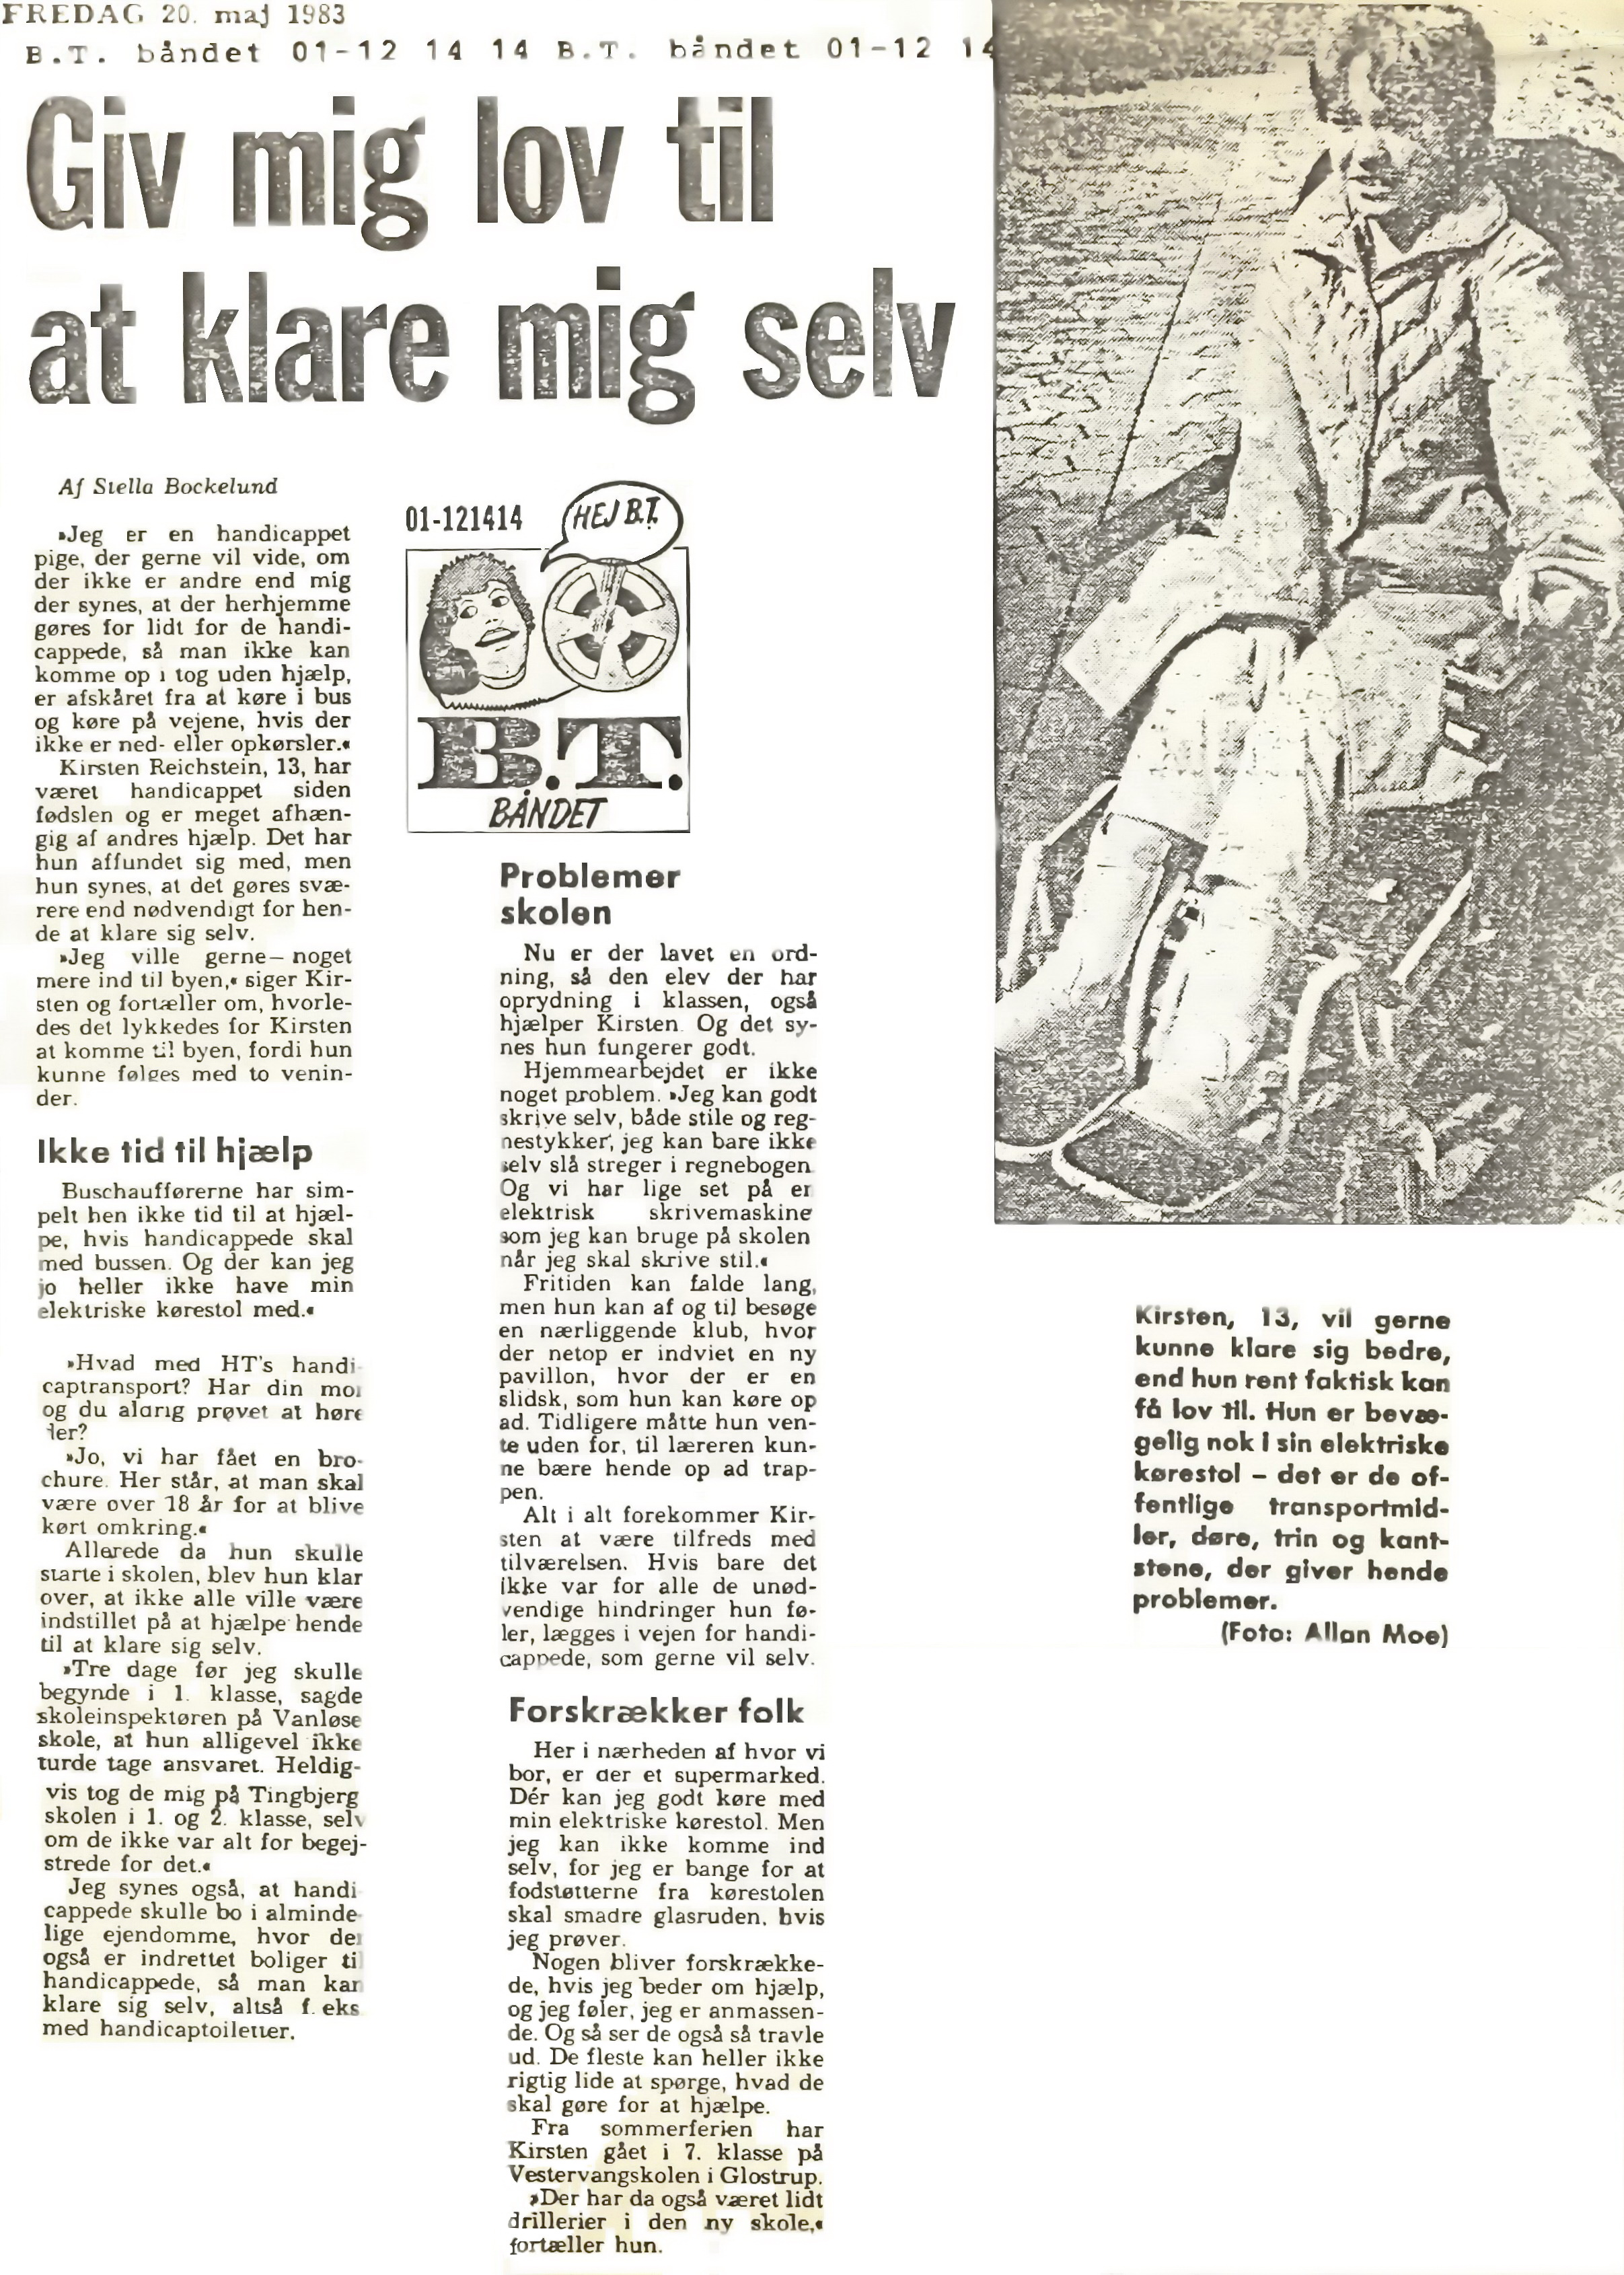 Make wrongs right - Article in BT May 20th. 1983 (only in Danish)